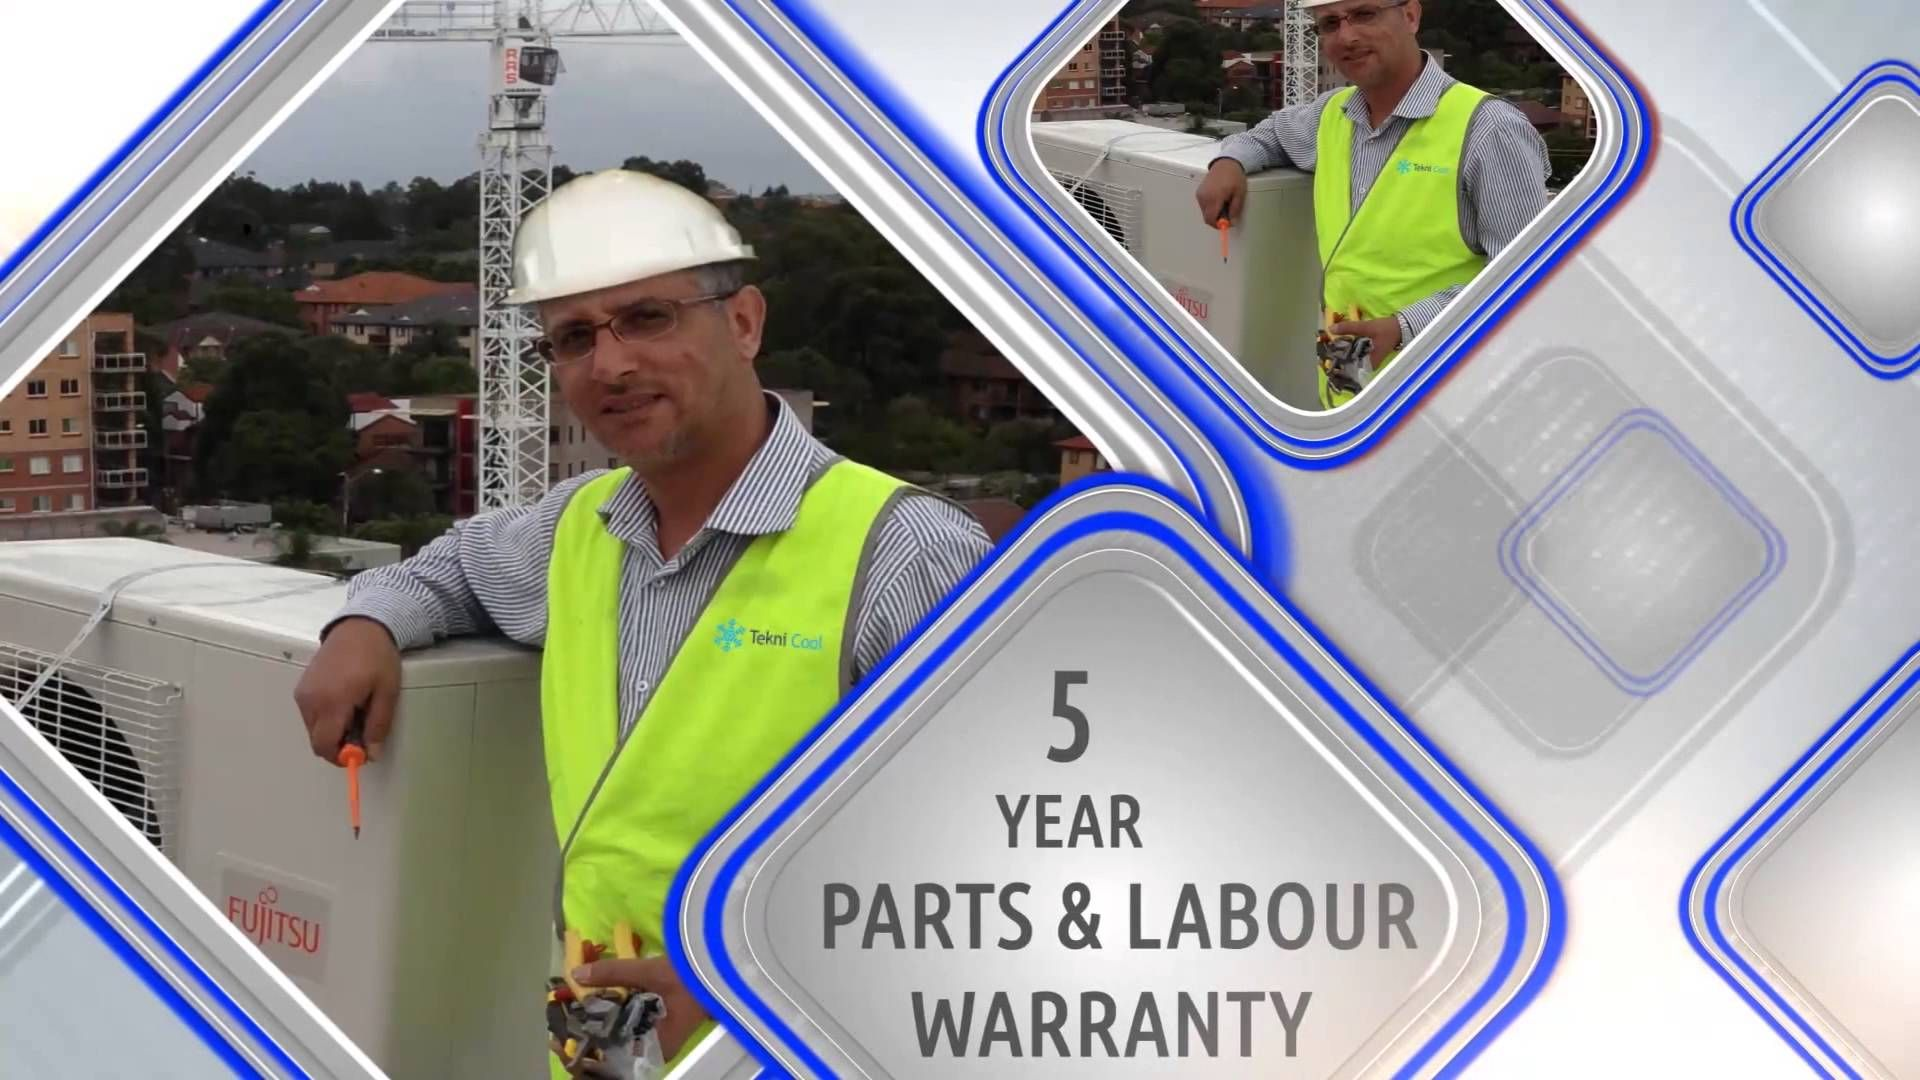 TekniCool Air Conditioning Sydney Offers Highly Flexible